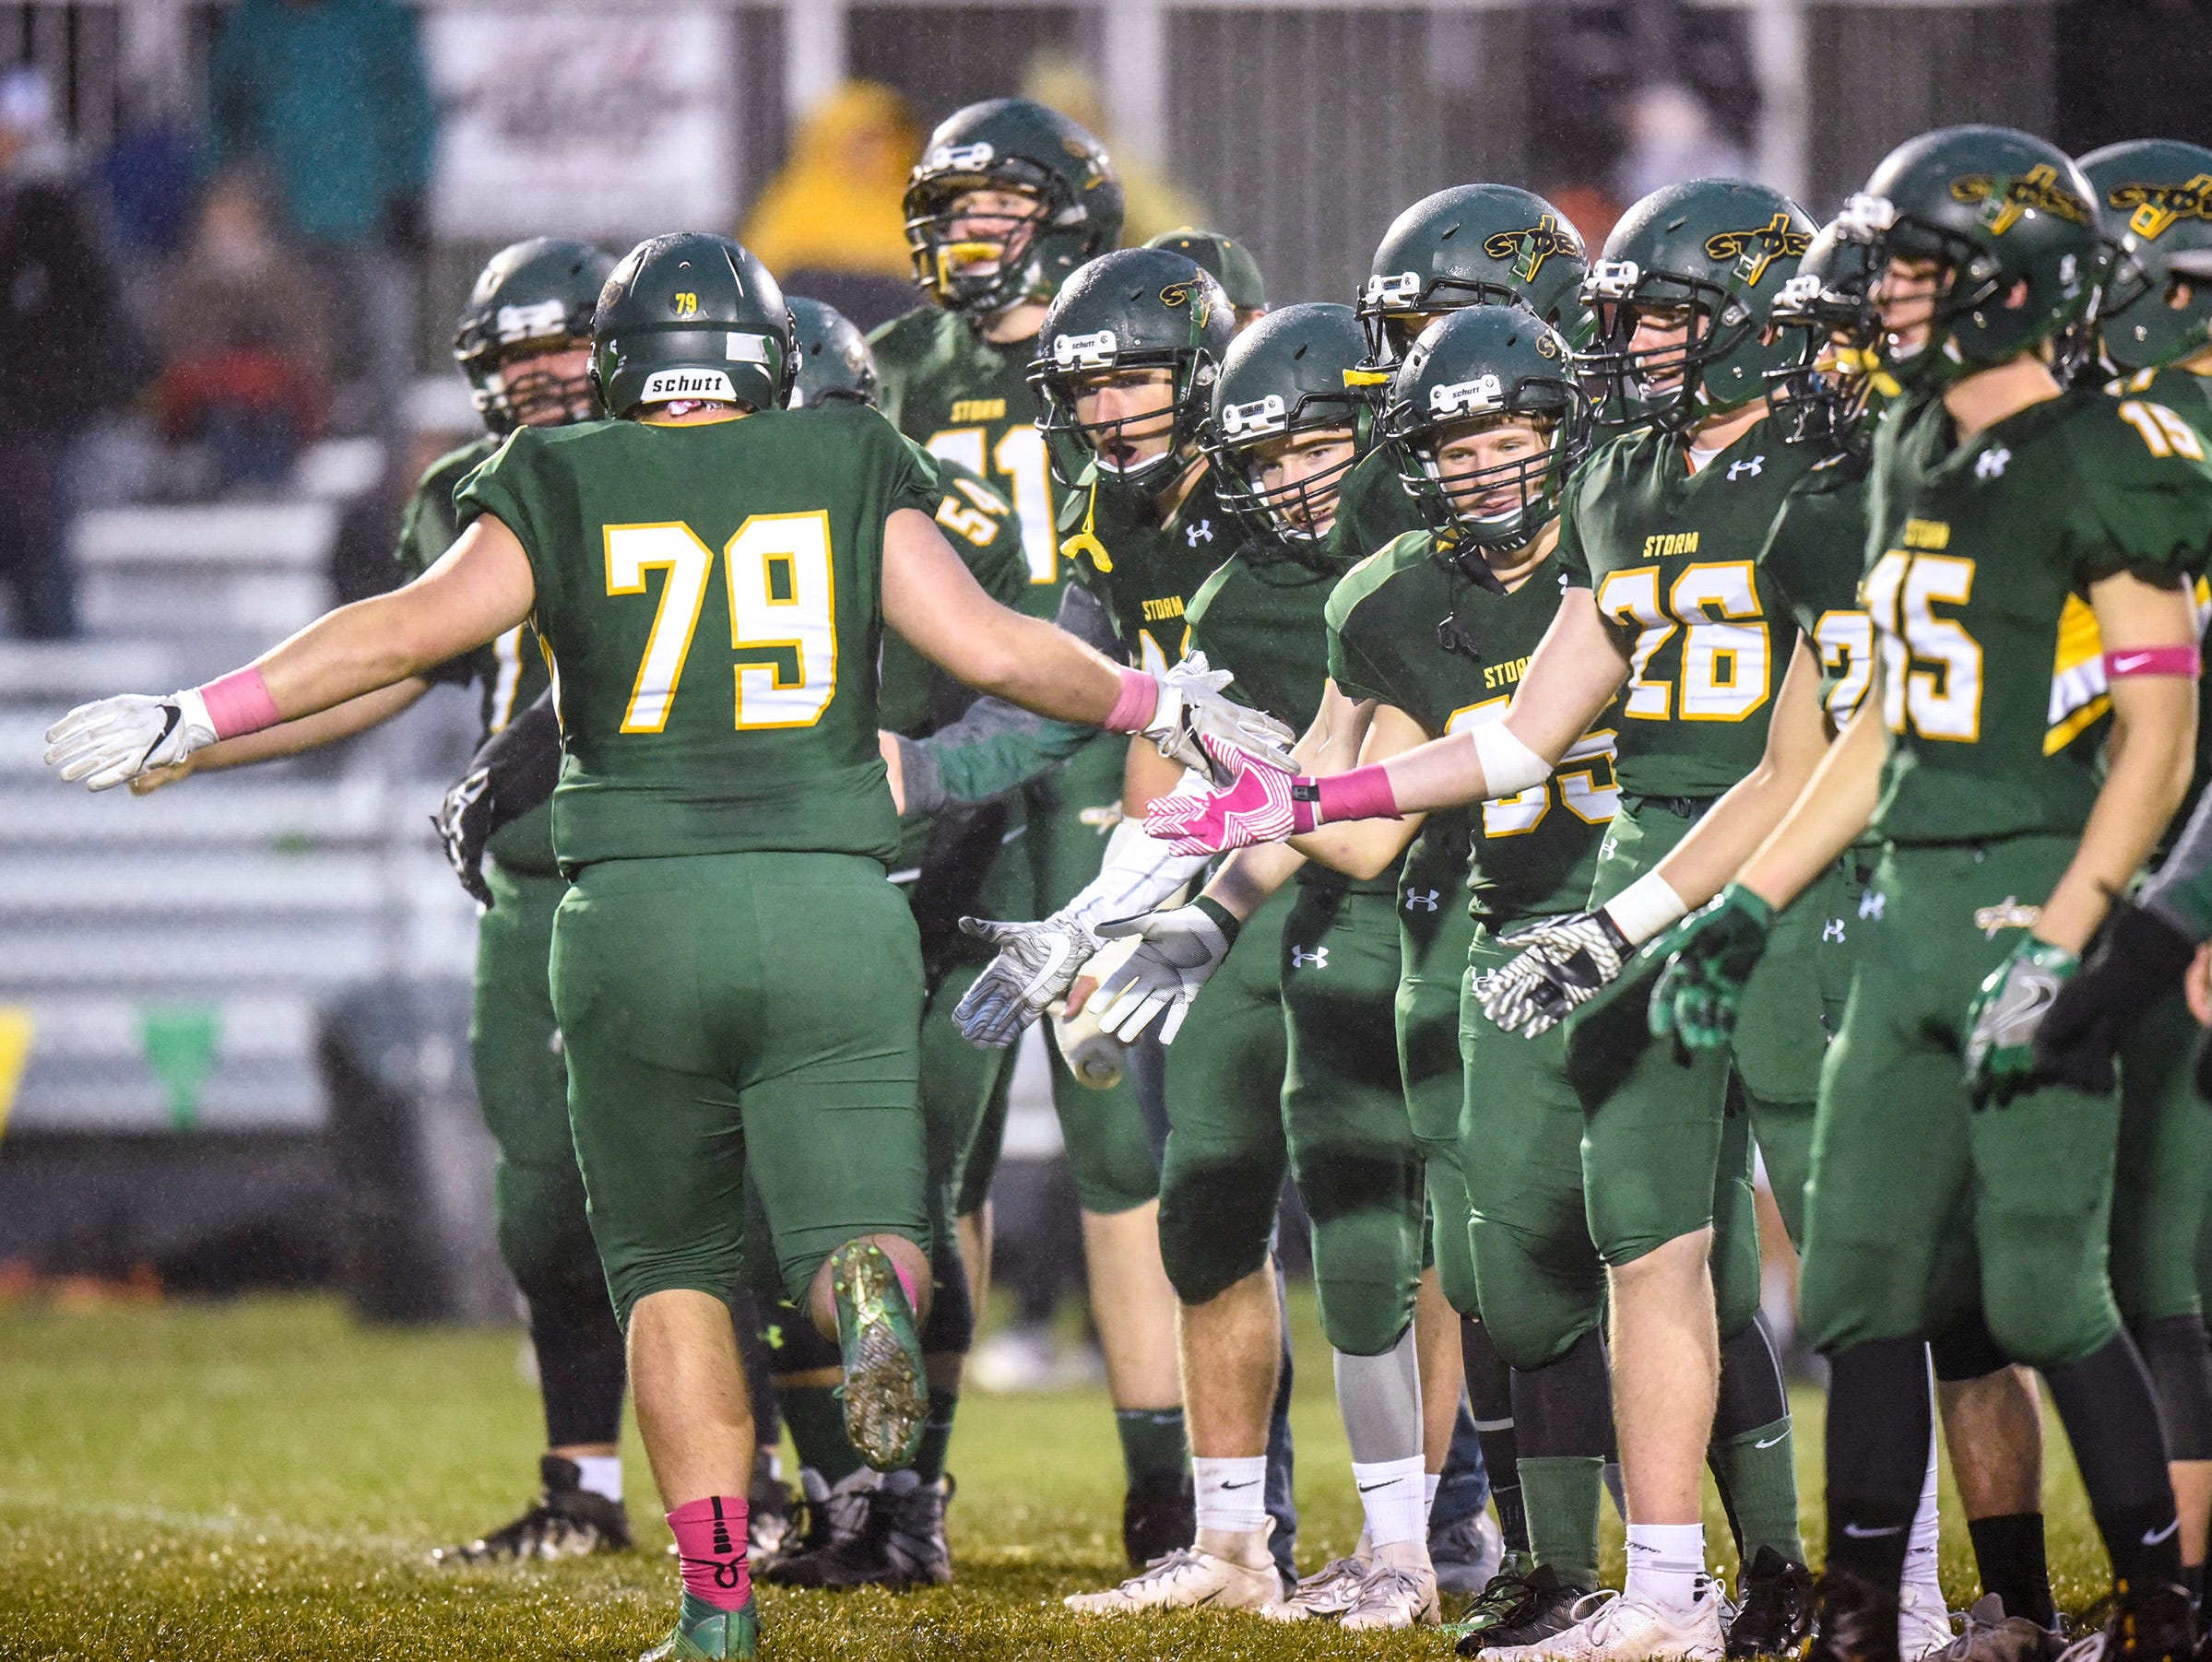 Sauk Rapids players are introduced before their game against Tech Friday, Oct. 5, in Sauk Rapids.